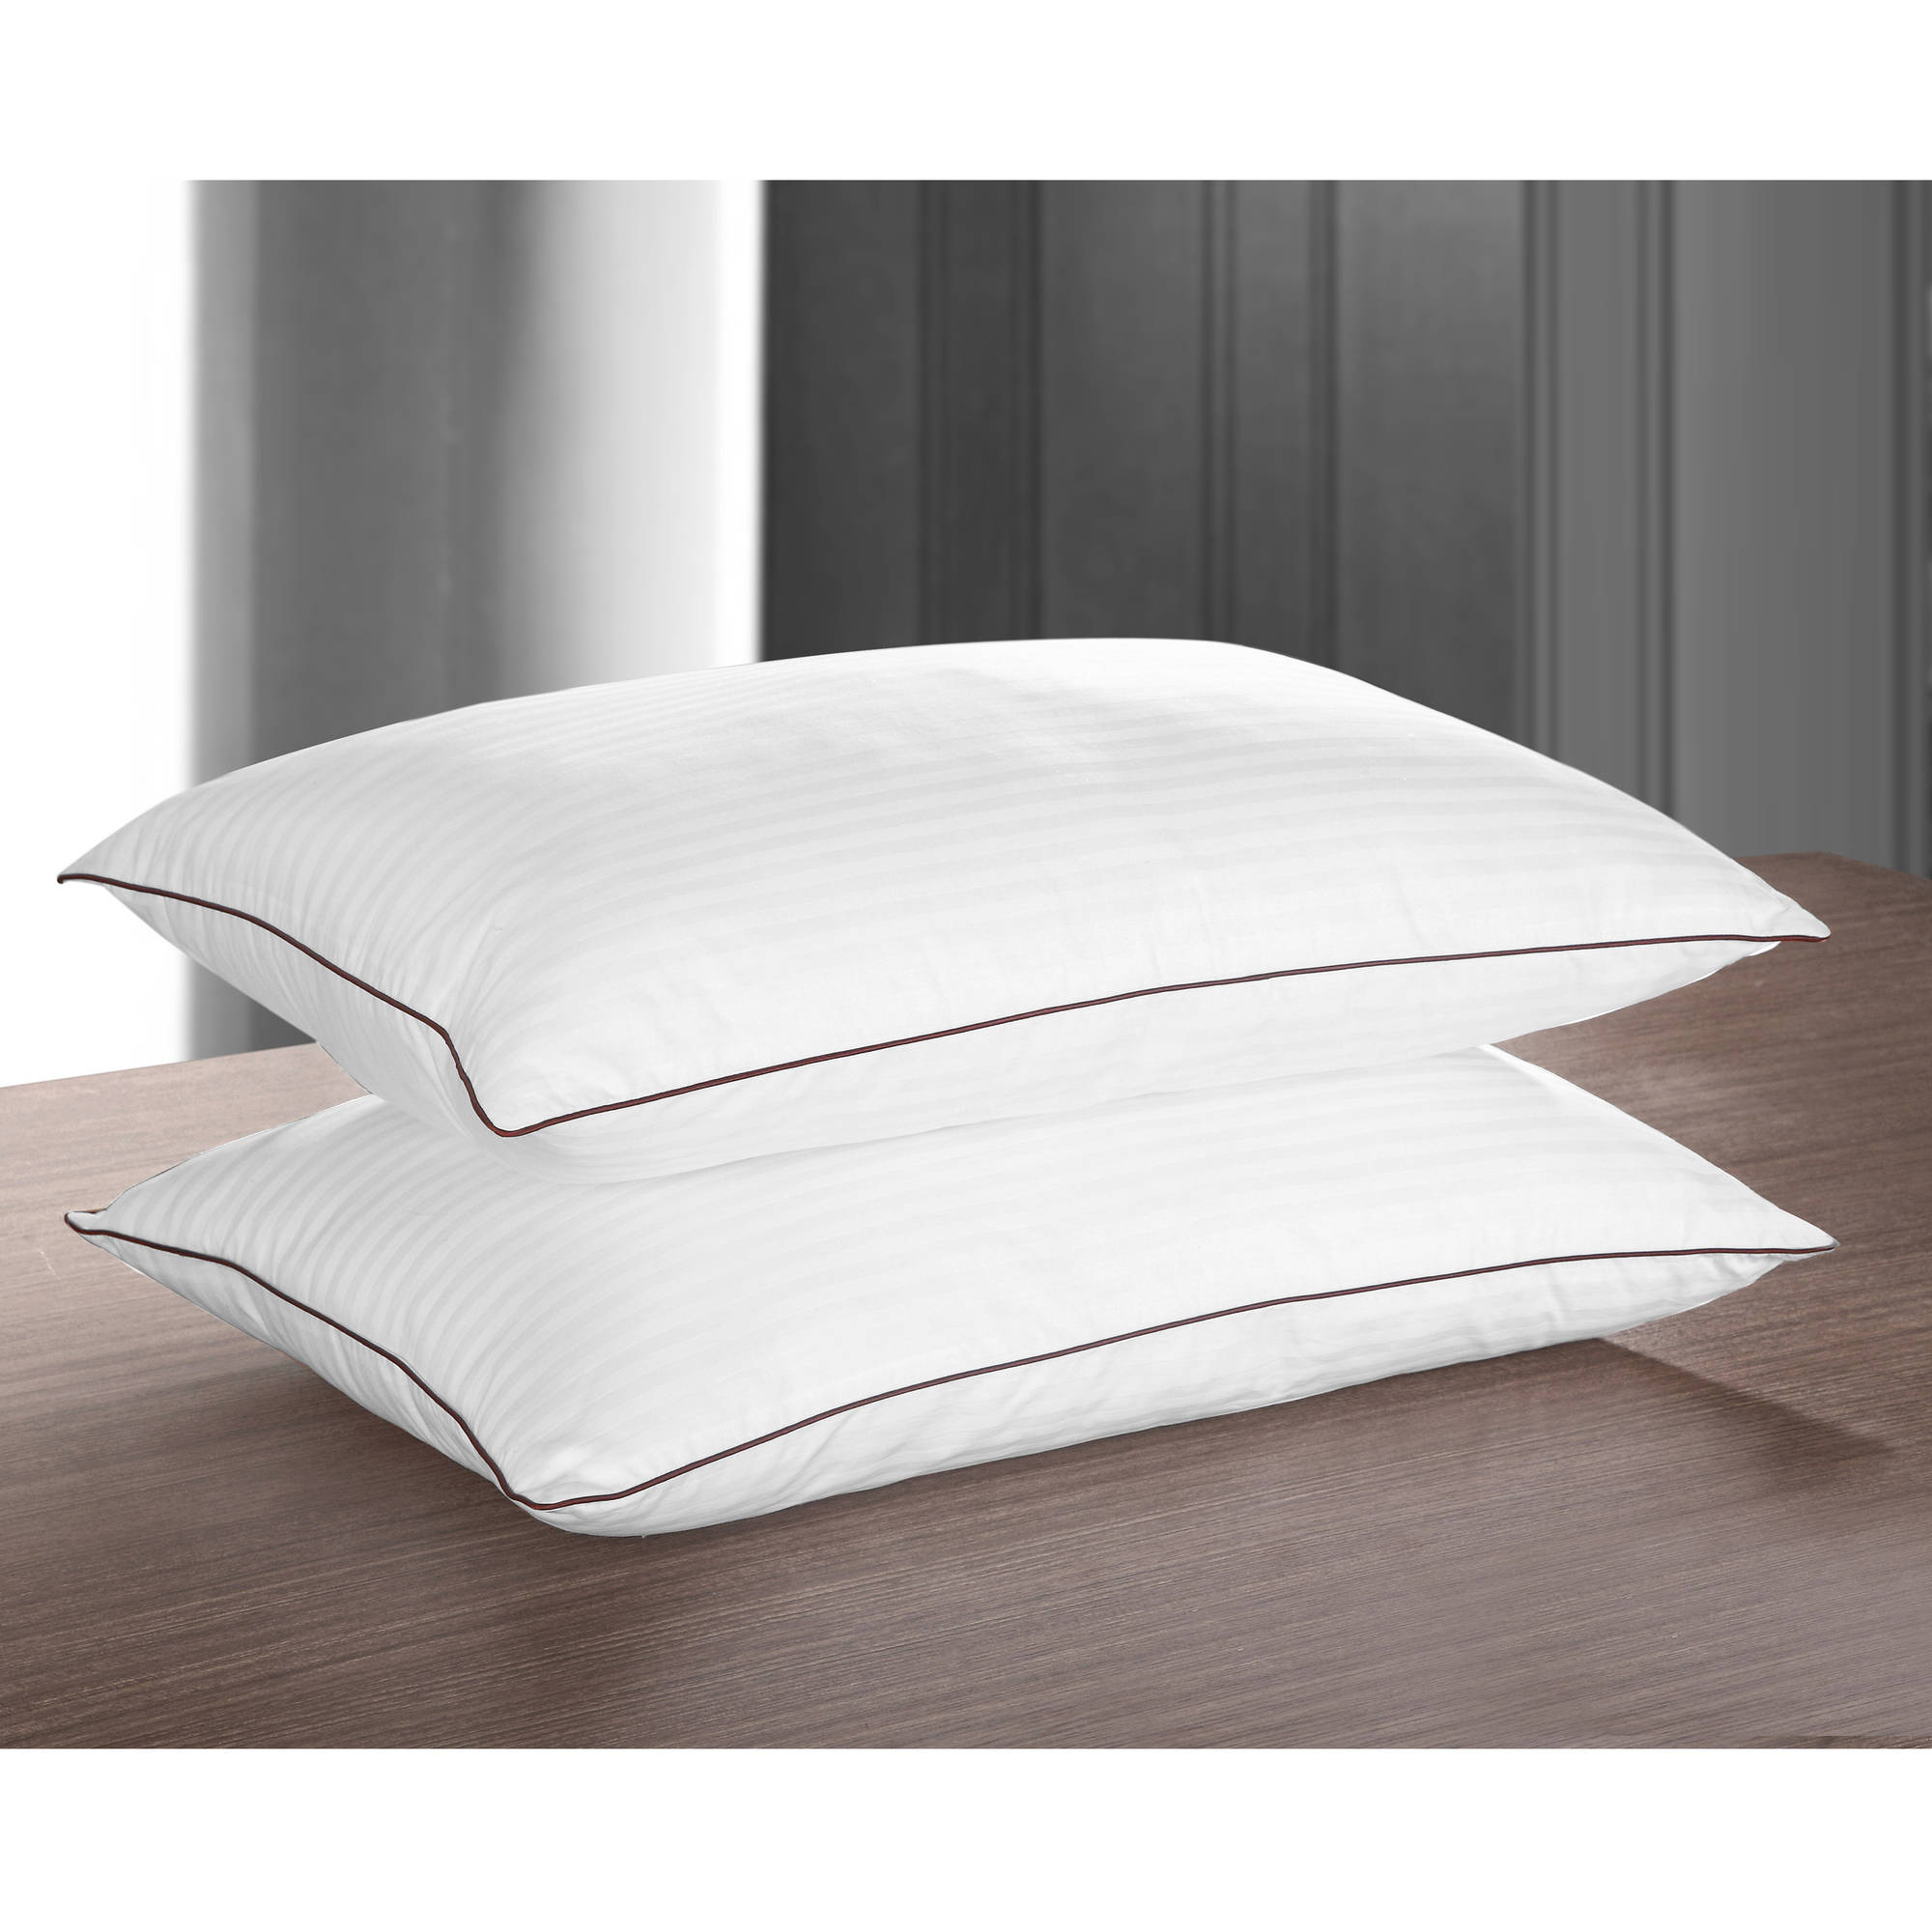 "Chic Home Oversized 20"" x 30"" 2pk Super Luxurious Down Alternative Overfilled Hotel Pillow, Hypoallergenic Fill"